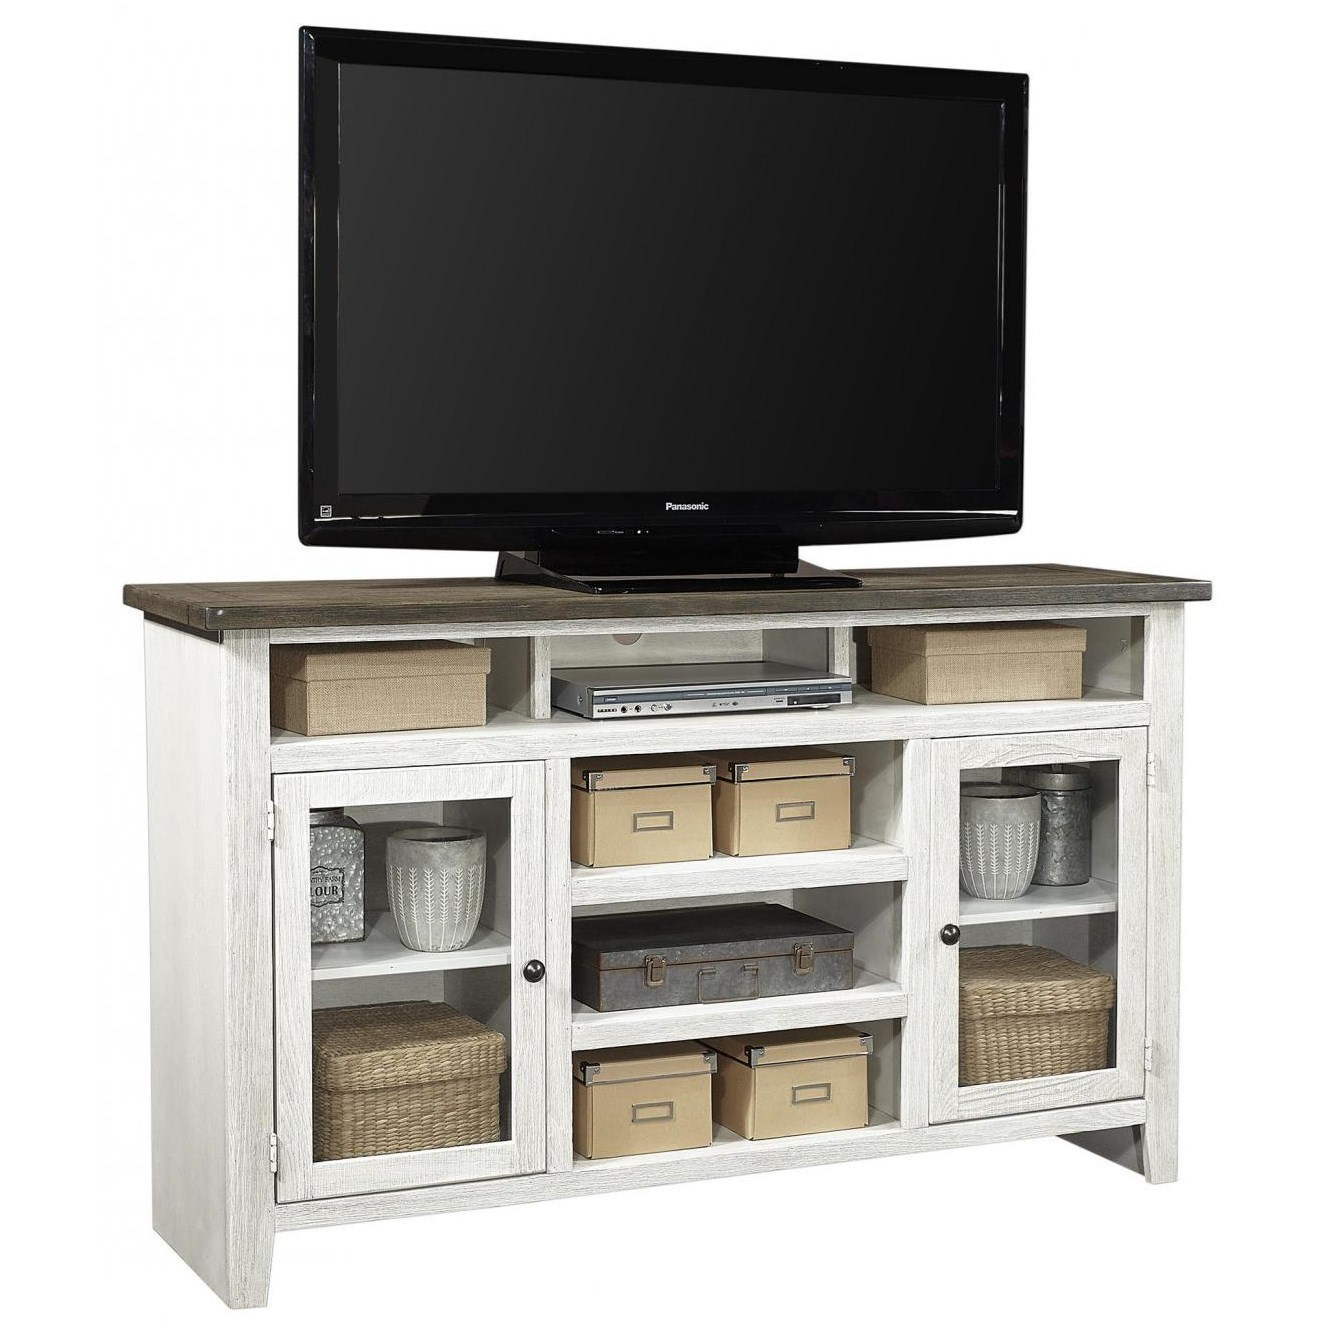 "Eastport 65"" Highboy Console by Aspenhome at Walker's Furniture"